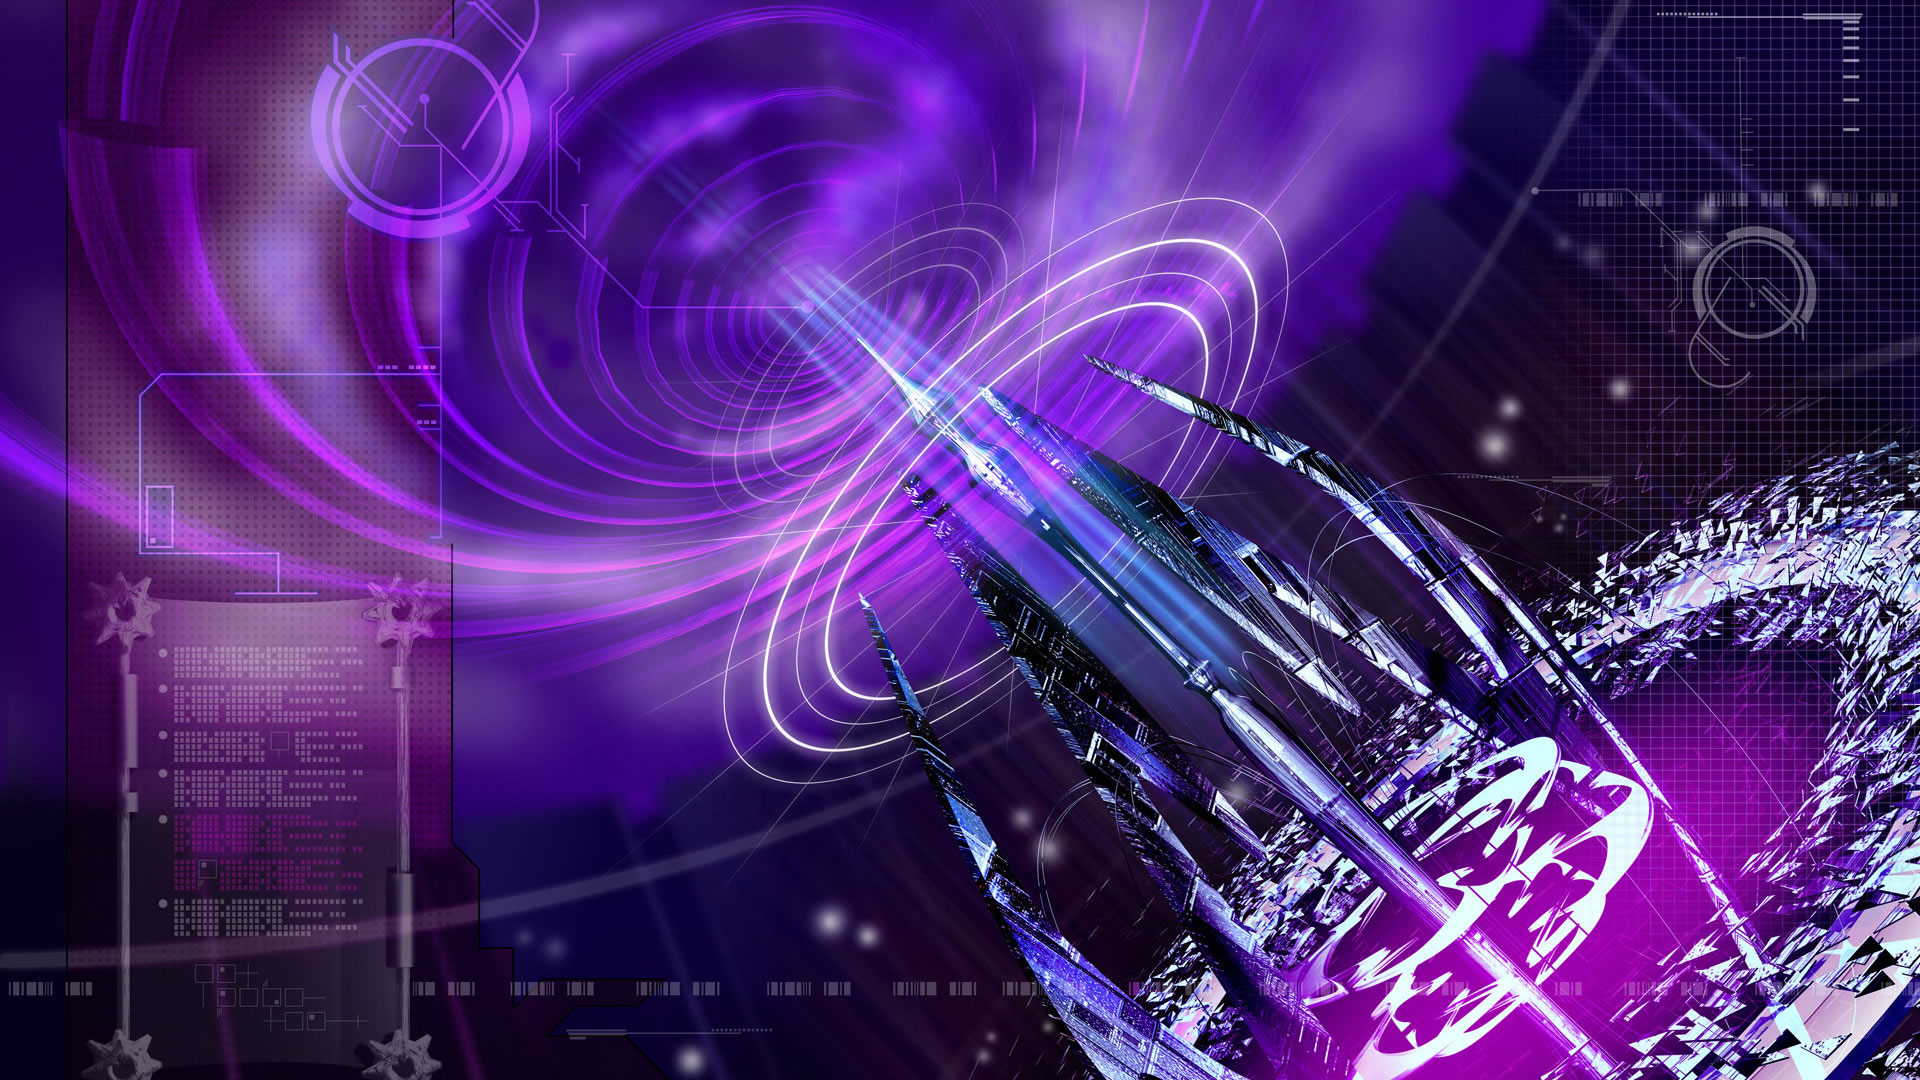 Cool Purple and Blue Backgrounds wallpaper Cool Purple and Blue 1920x1080